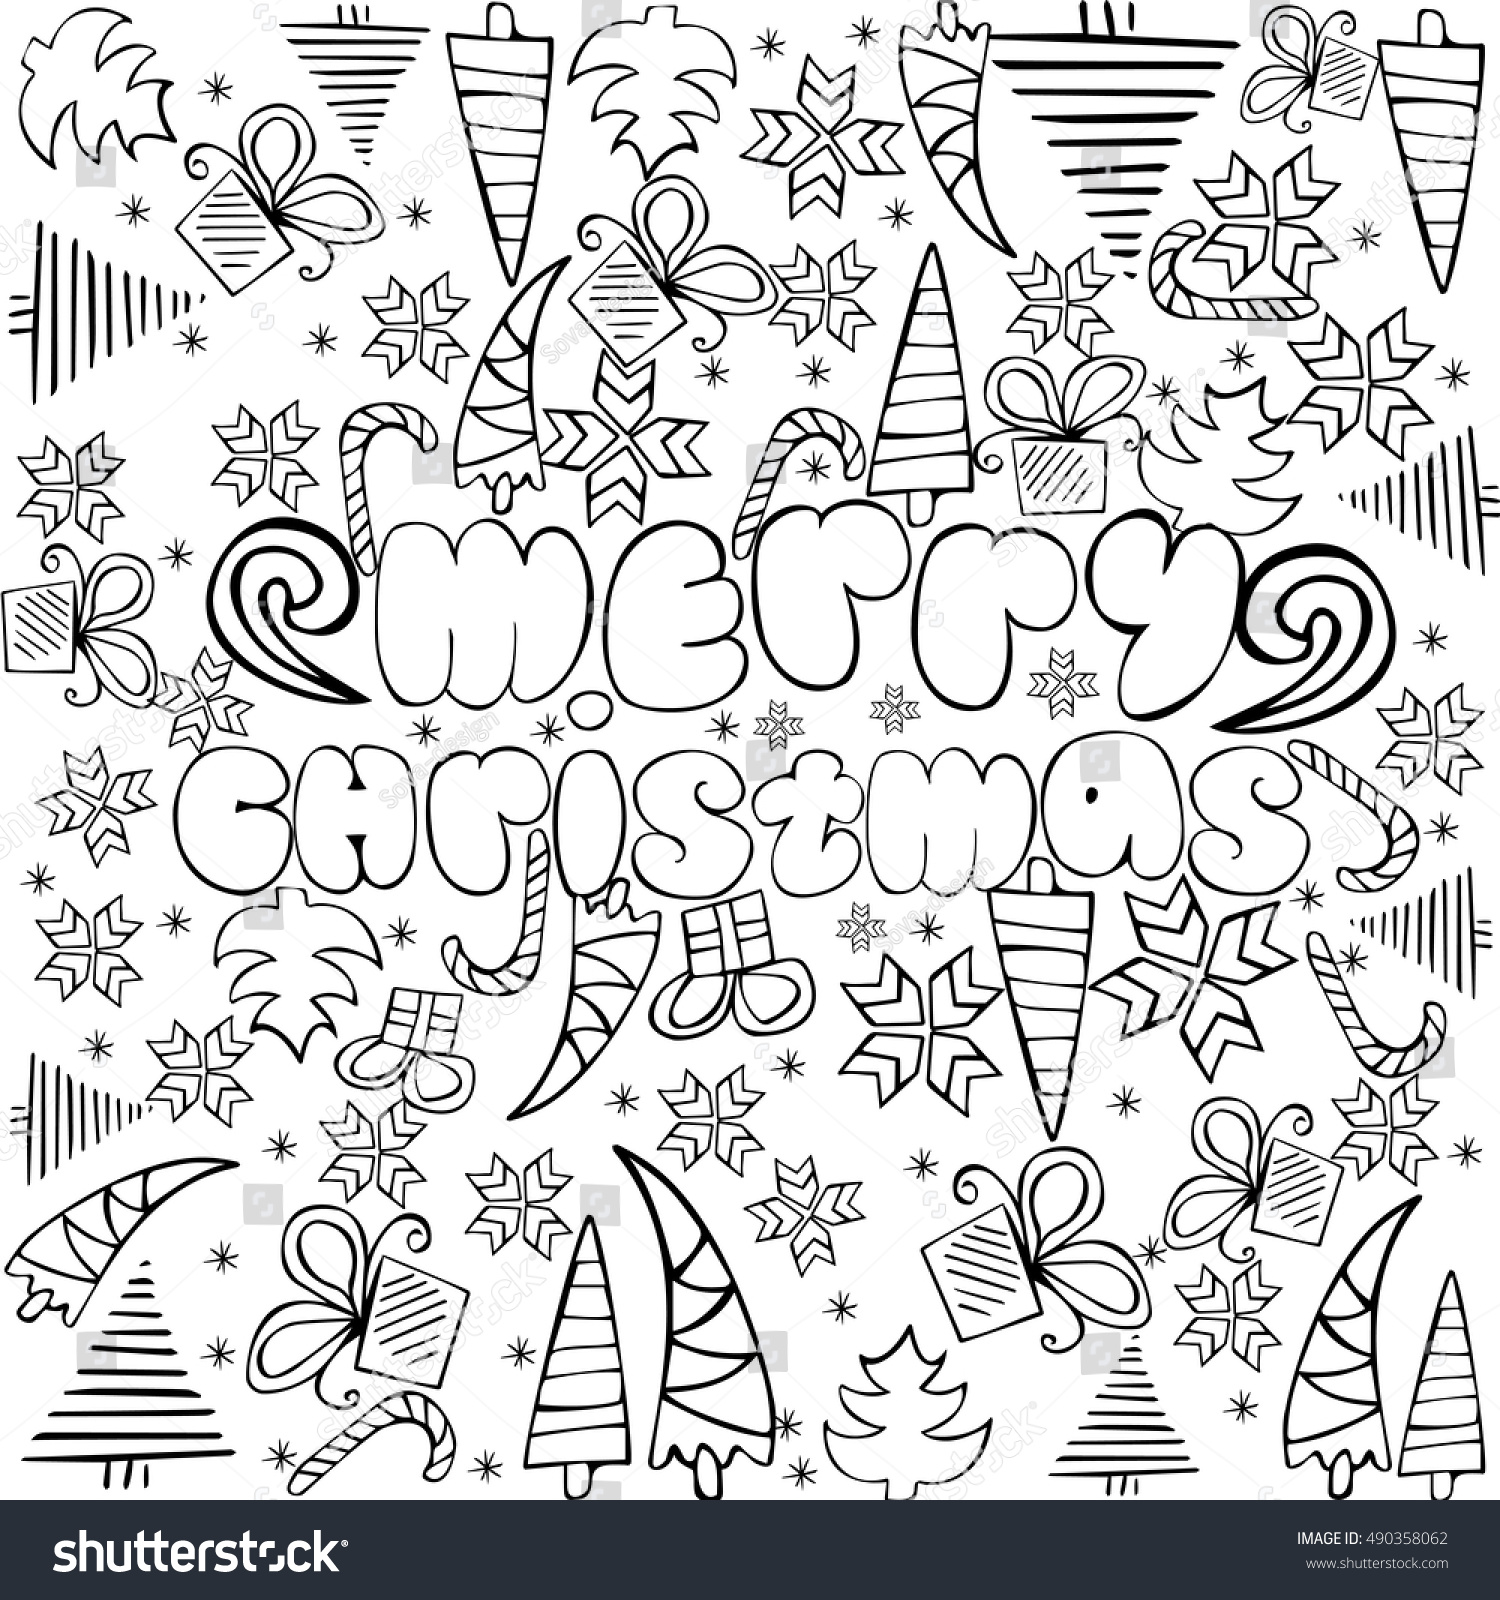 Merry Christmas Sign With Themed Doodle Sketchy Illustration Anti Stress Coloring Page